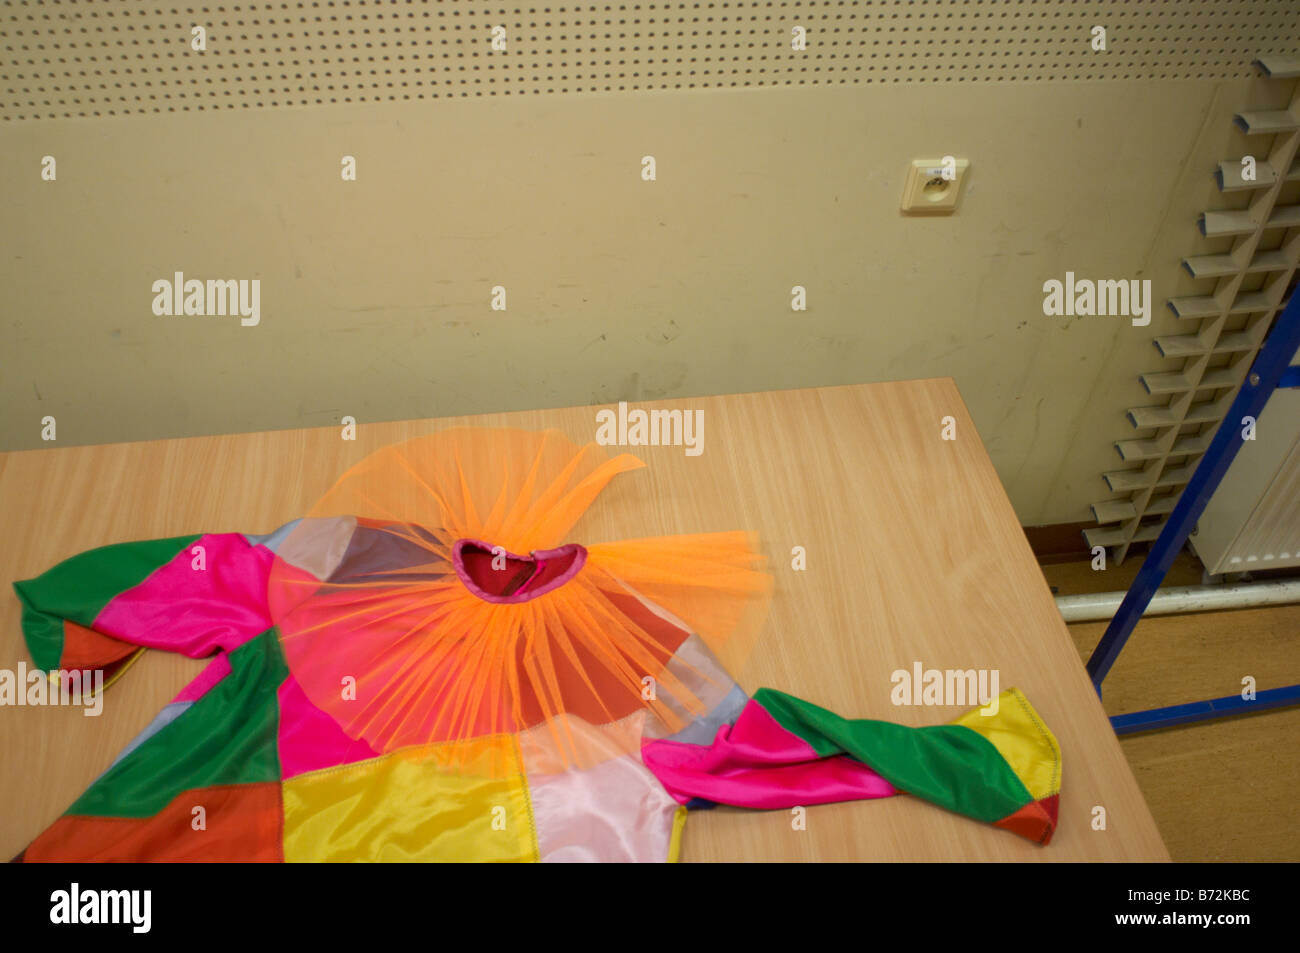 A costume abandoned backstage behind scenes during rehearsals in Poland - Stock Image